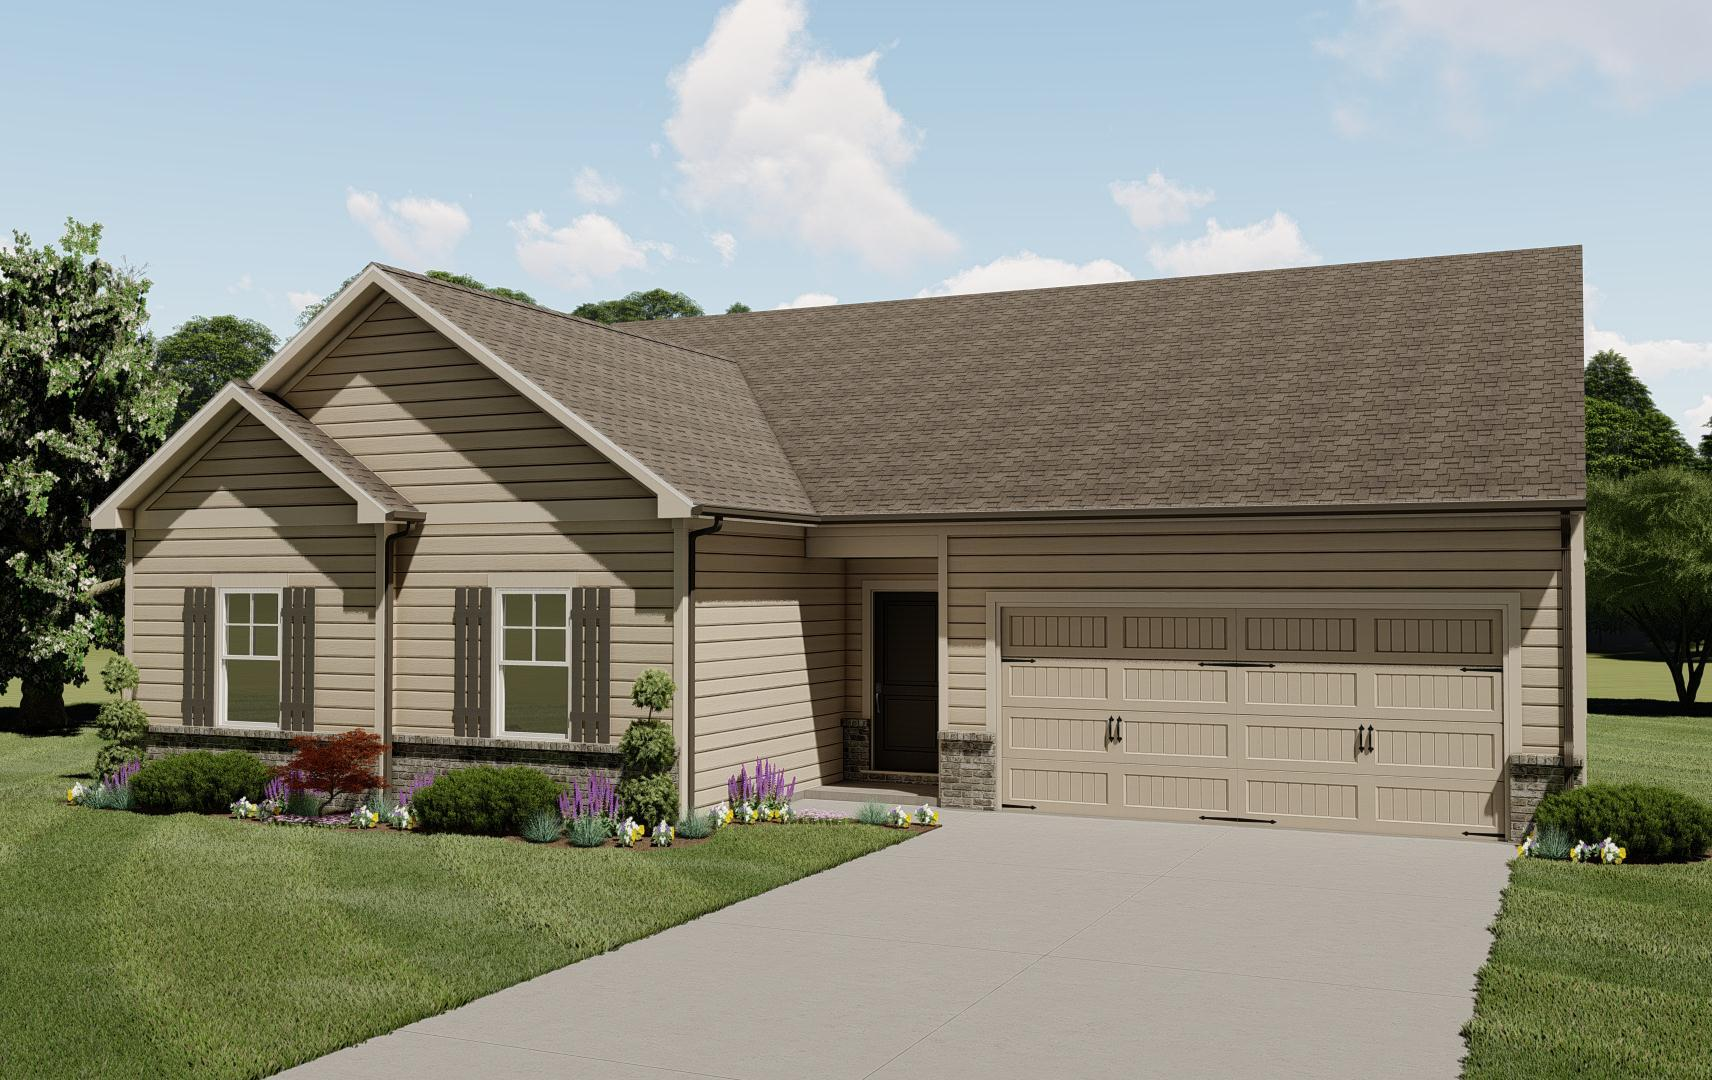 The Magnolia by Chafin Communities